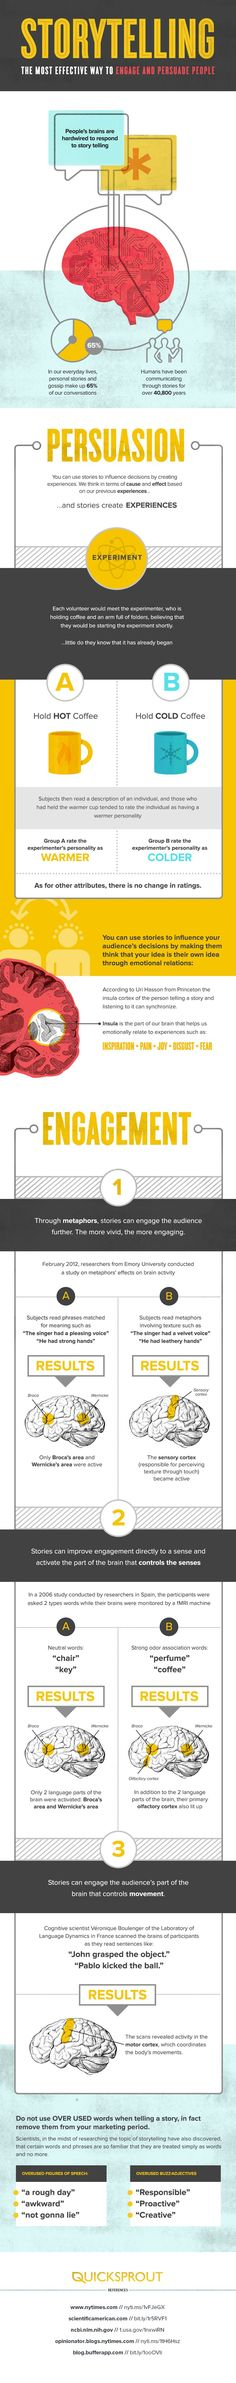 How to engage people through storytelling Infographic